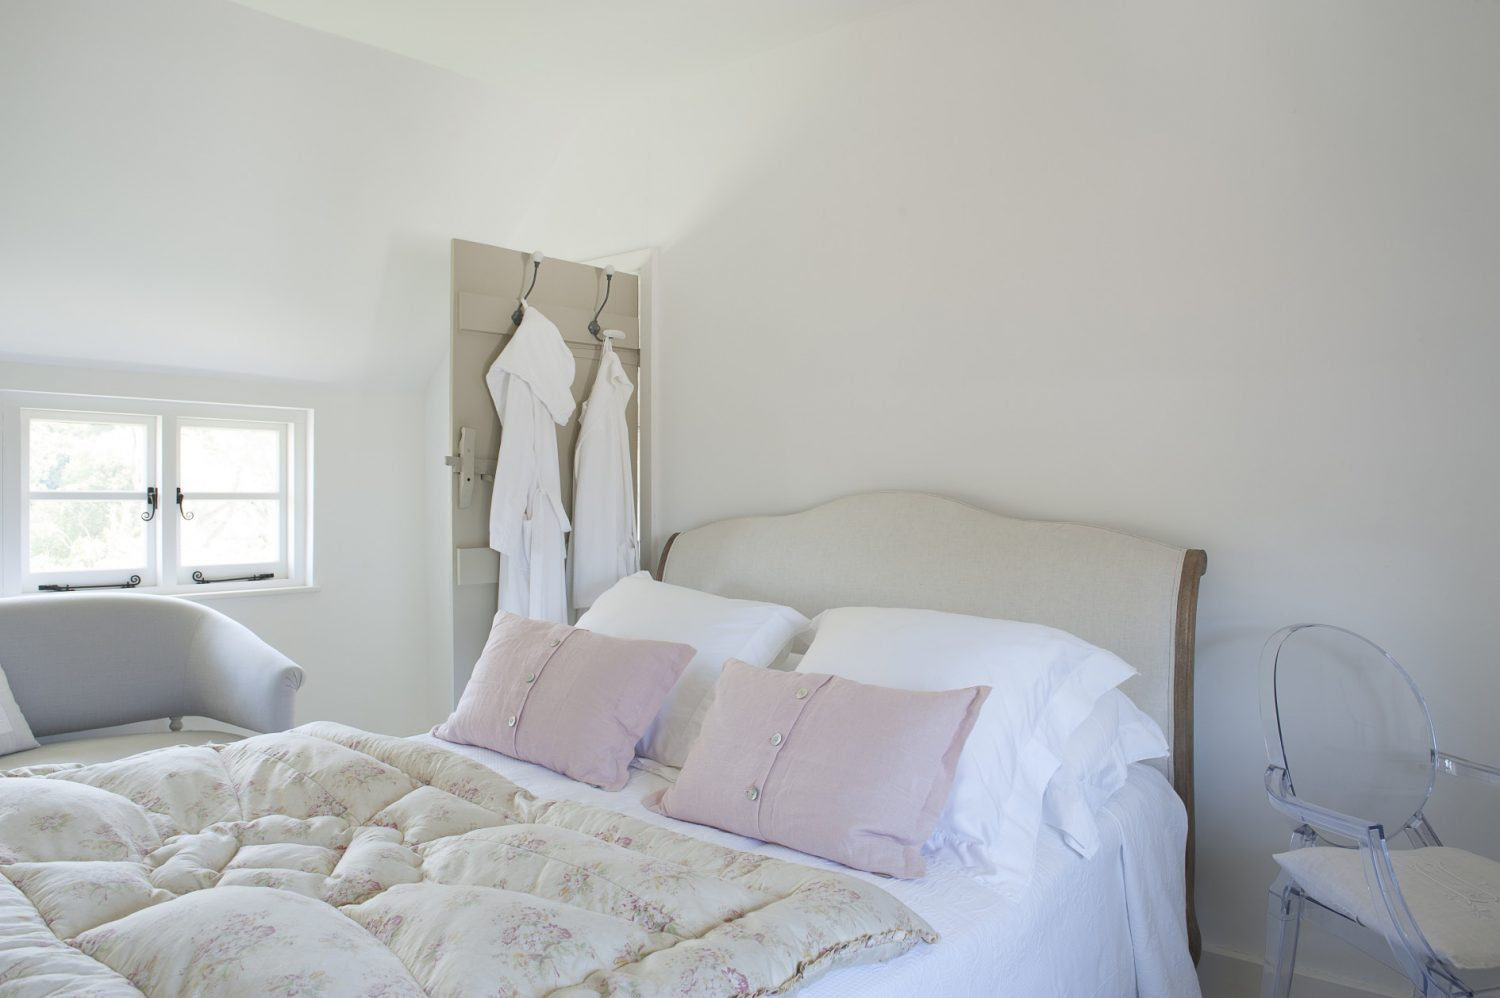 The French-style bed is a Marie Antoinette by Loaf, the chic dressing table is from The White Company and the ethereal chair that complements it is a Louis Ghost by Philippe Starck